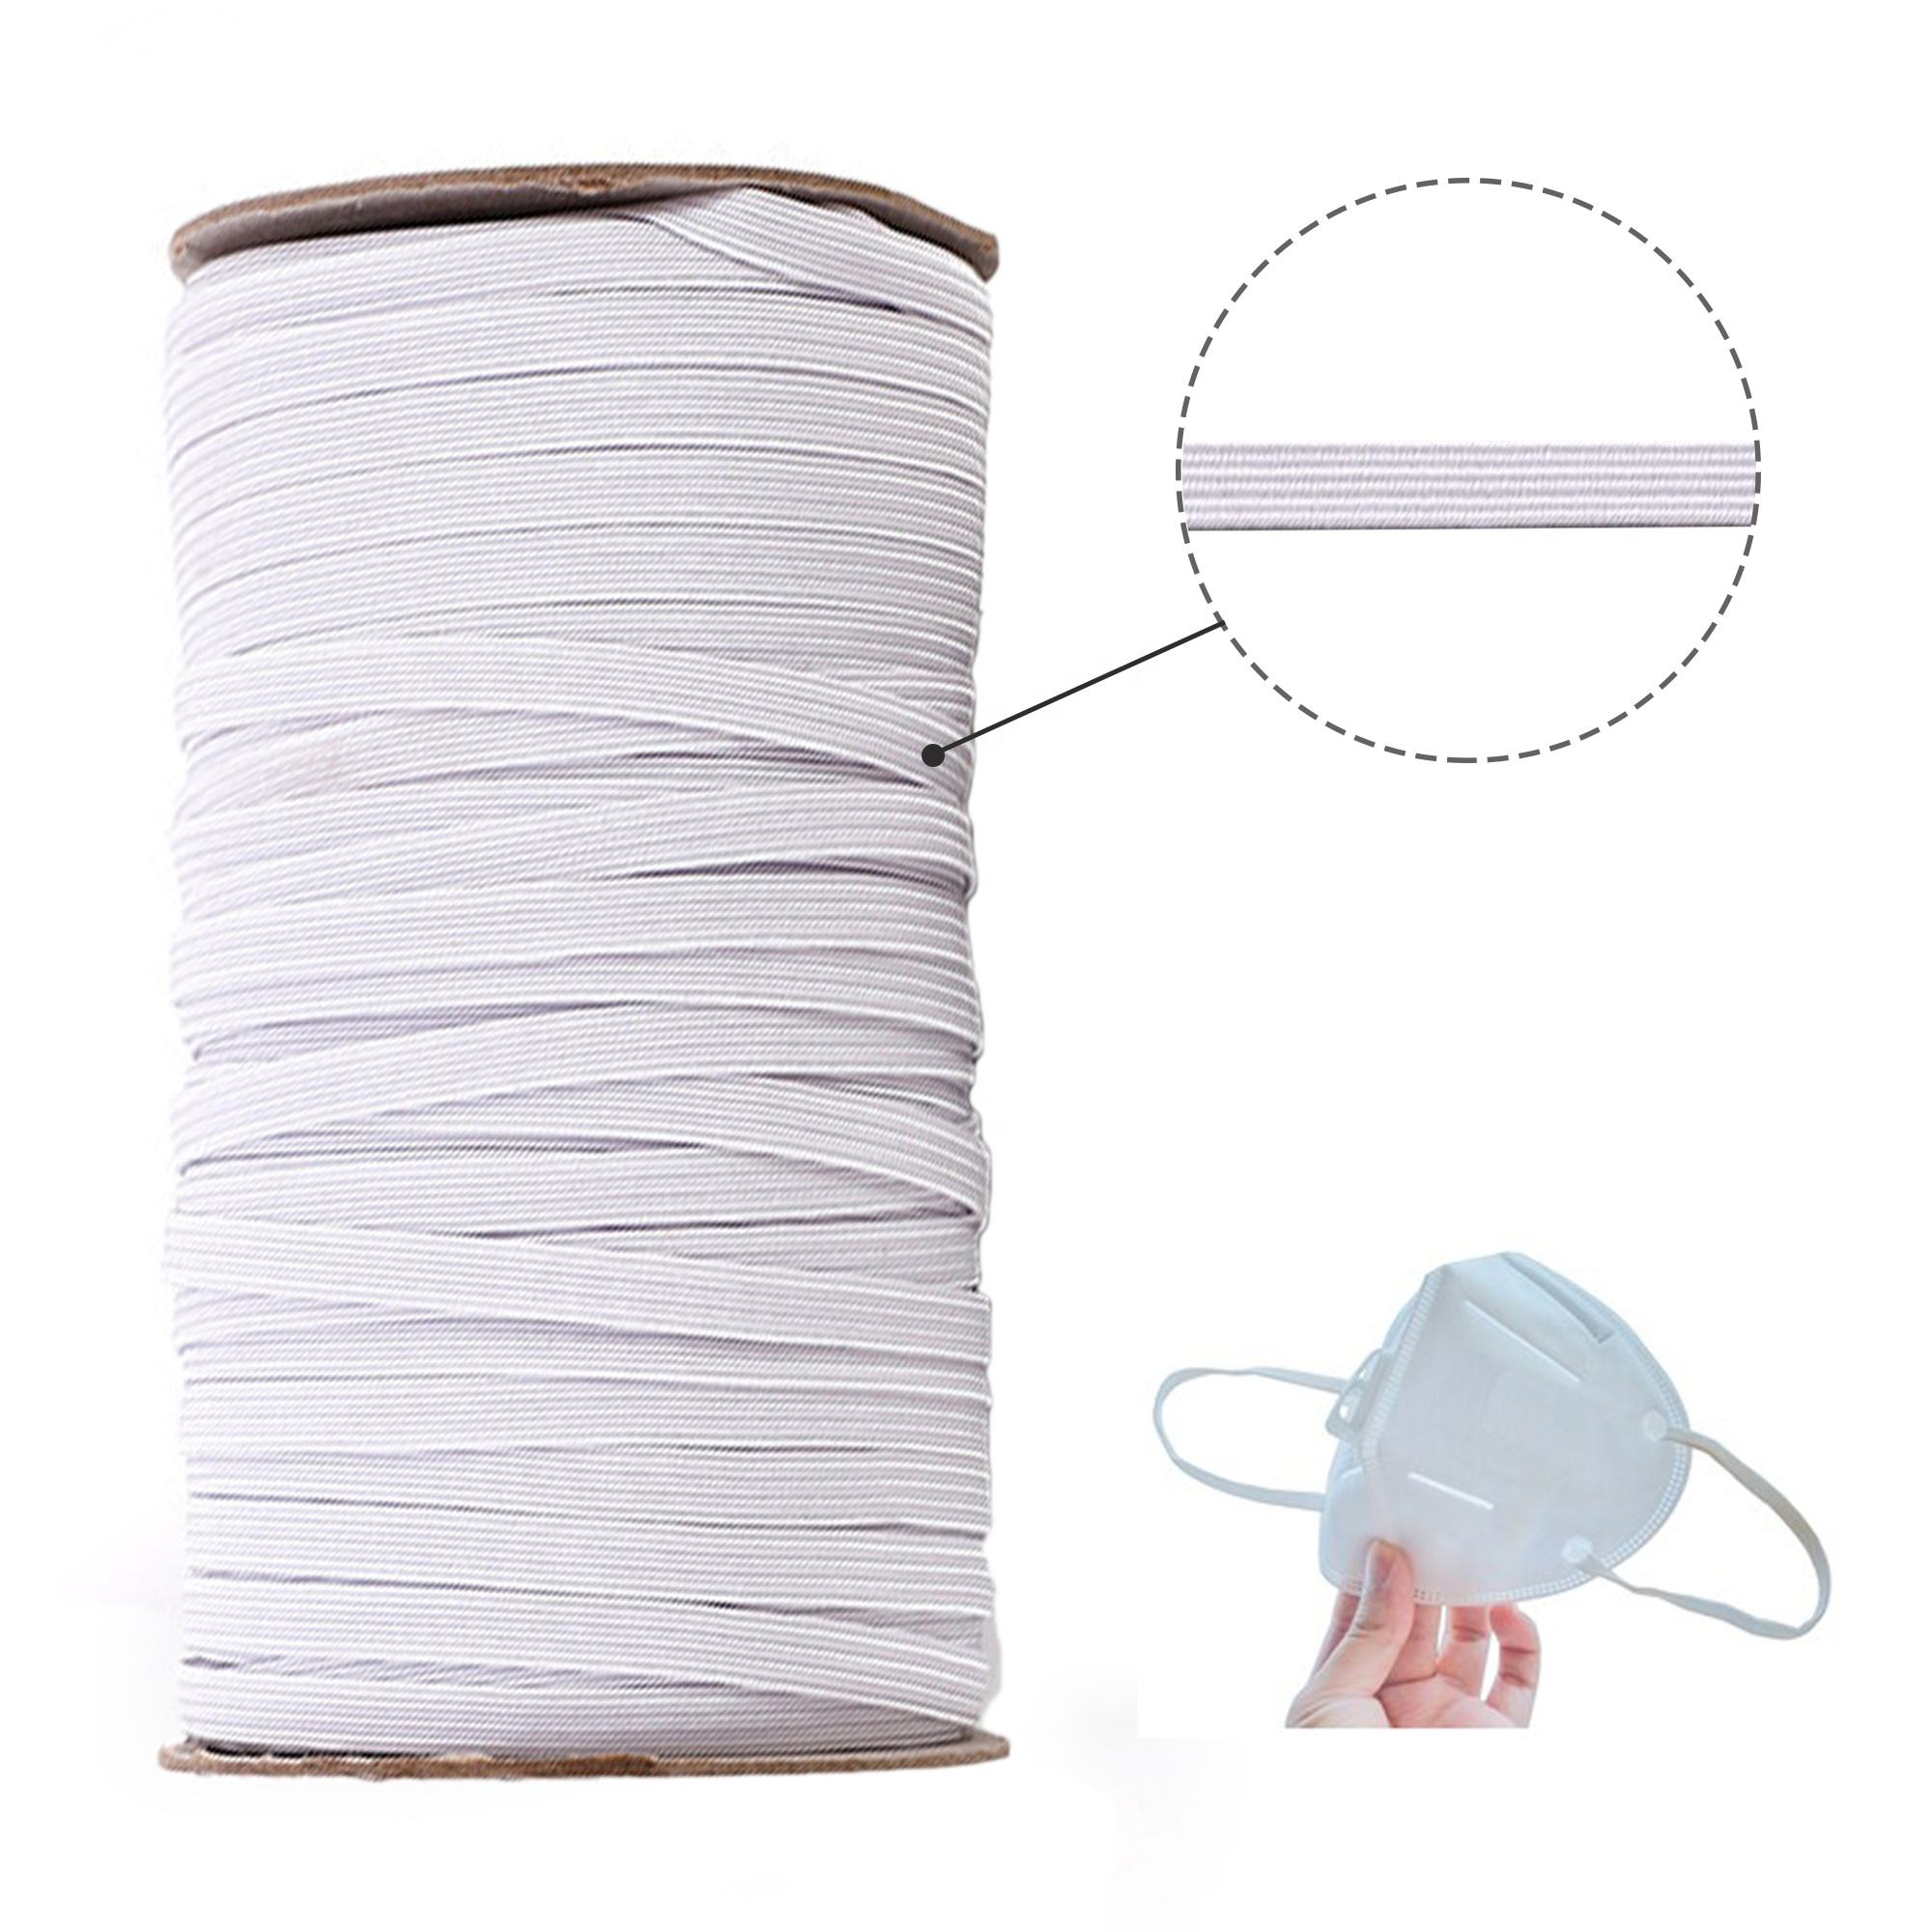 Midi Stock High Elasticity Braided Elastic Cord Band For Mask Band Rope Sewing Crafts